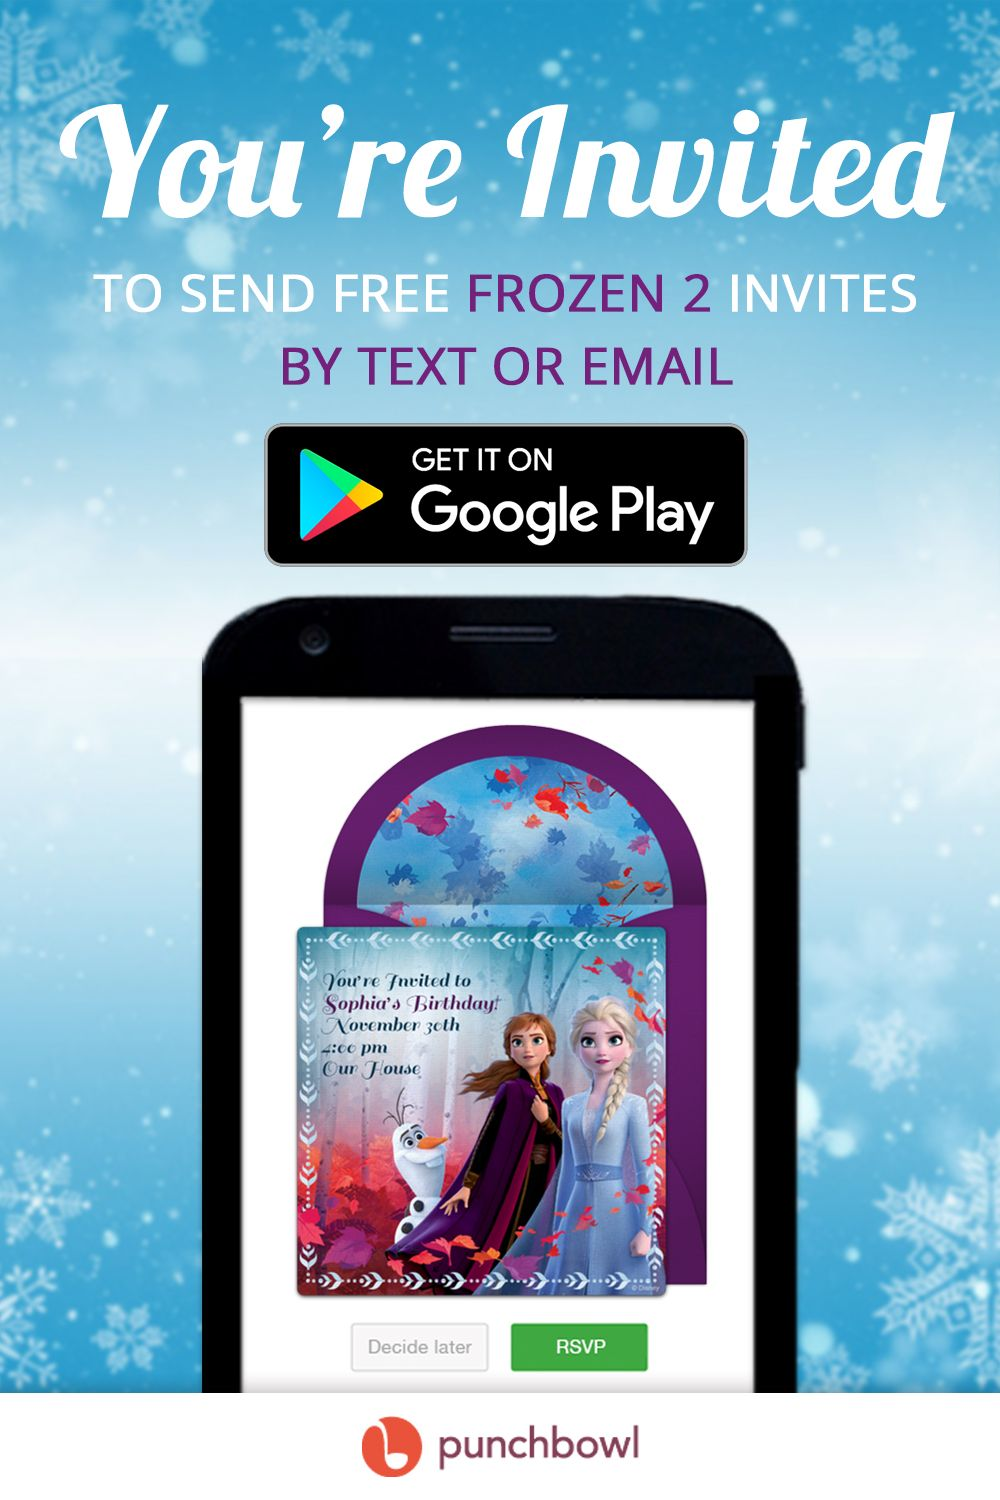 Send free Frozen invitations by text message right from